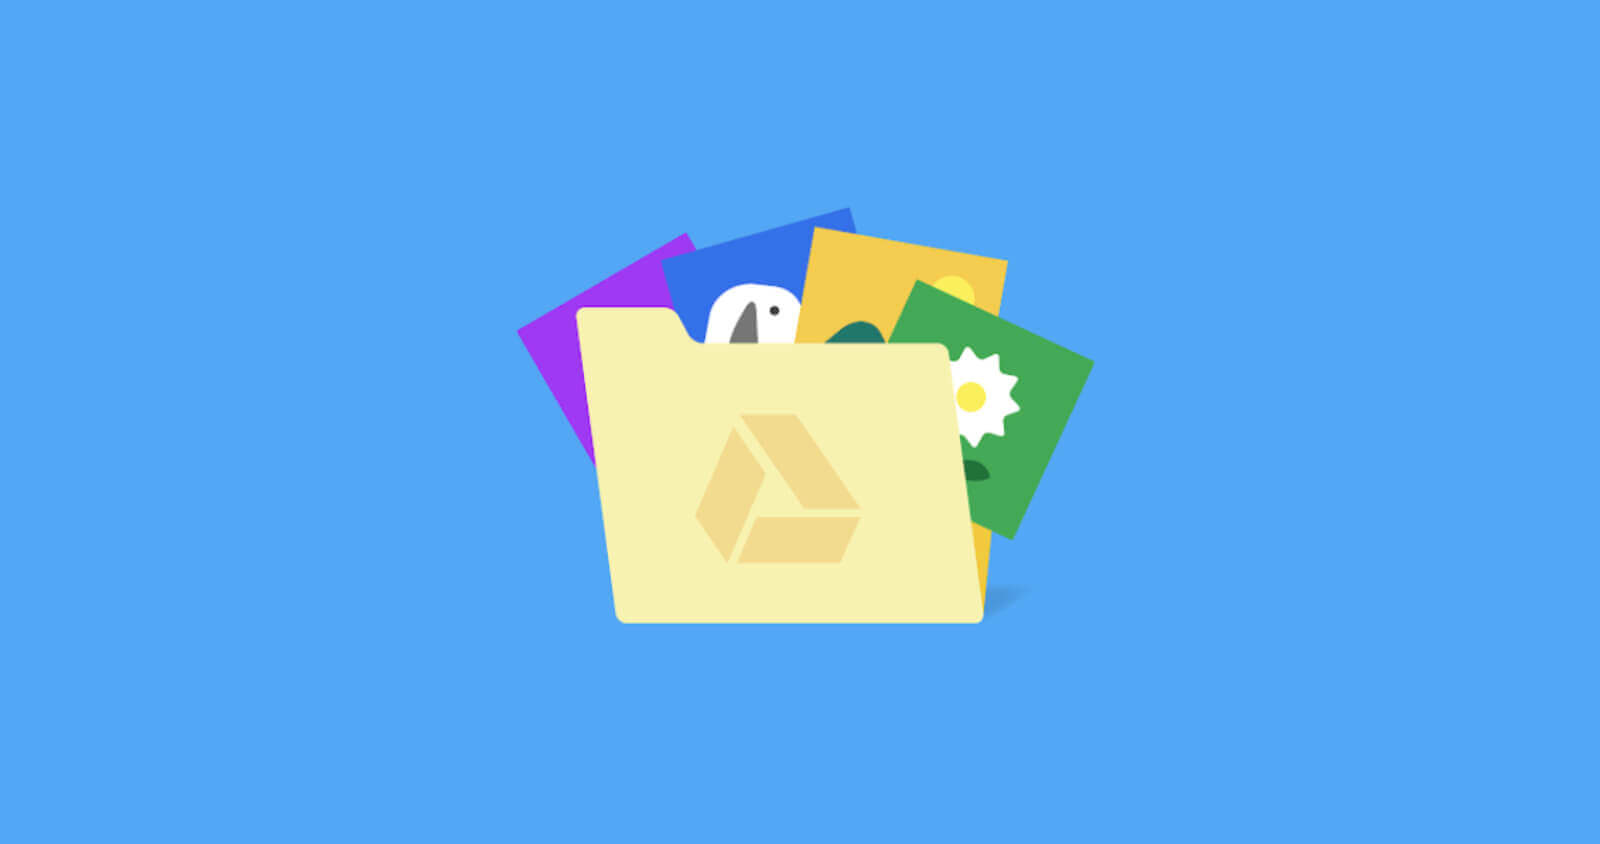 File shortcuts are coming to Google Drive for G Suite users